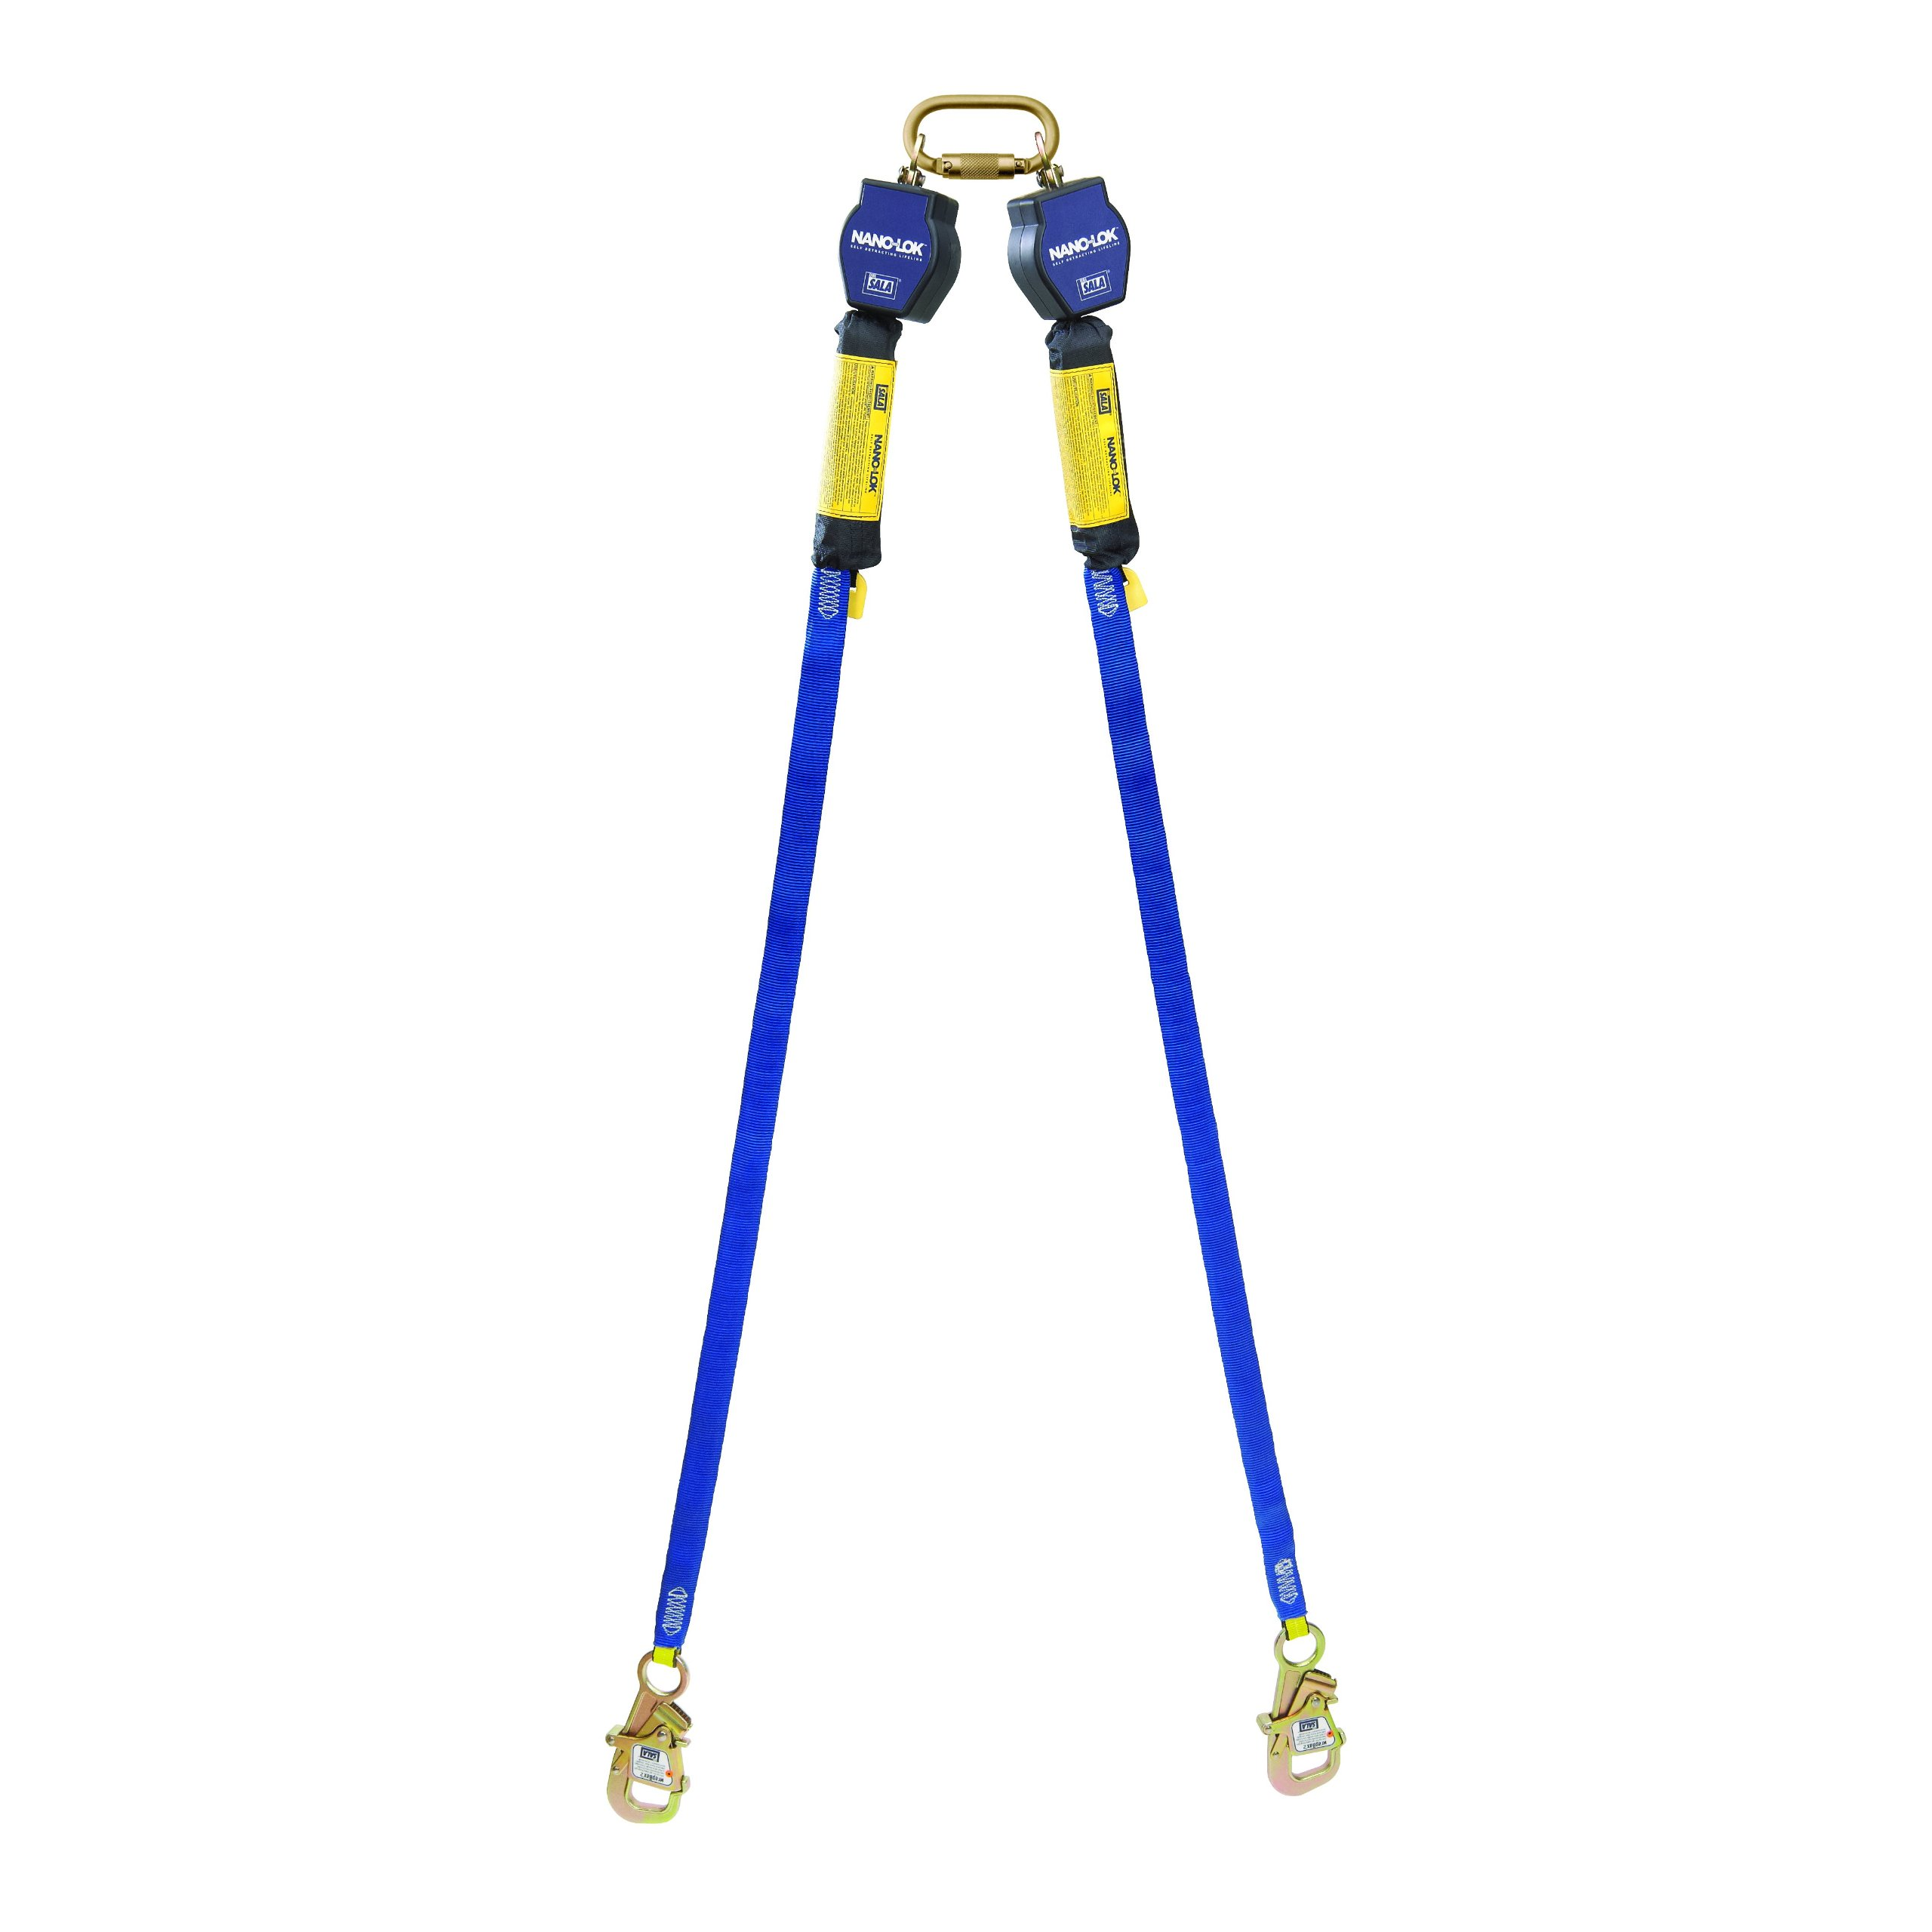 3M DBI-SALA Nano-Lok 3101373 Self Retracting Lifeline, 9', 3/4'' Dynema Polyester Web, Tie-Back Hook, Quick Connector For Fixed D-Ring Harness Mounting, Blue